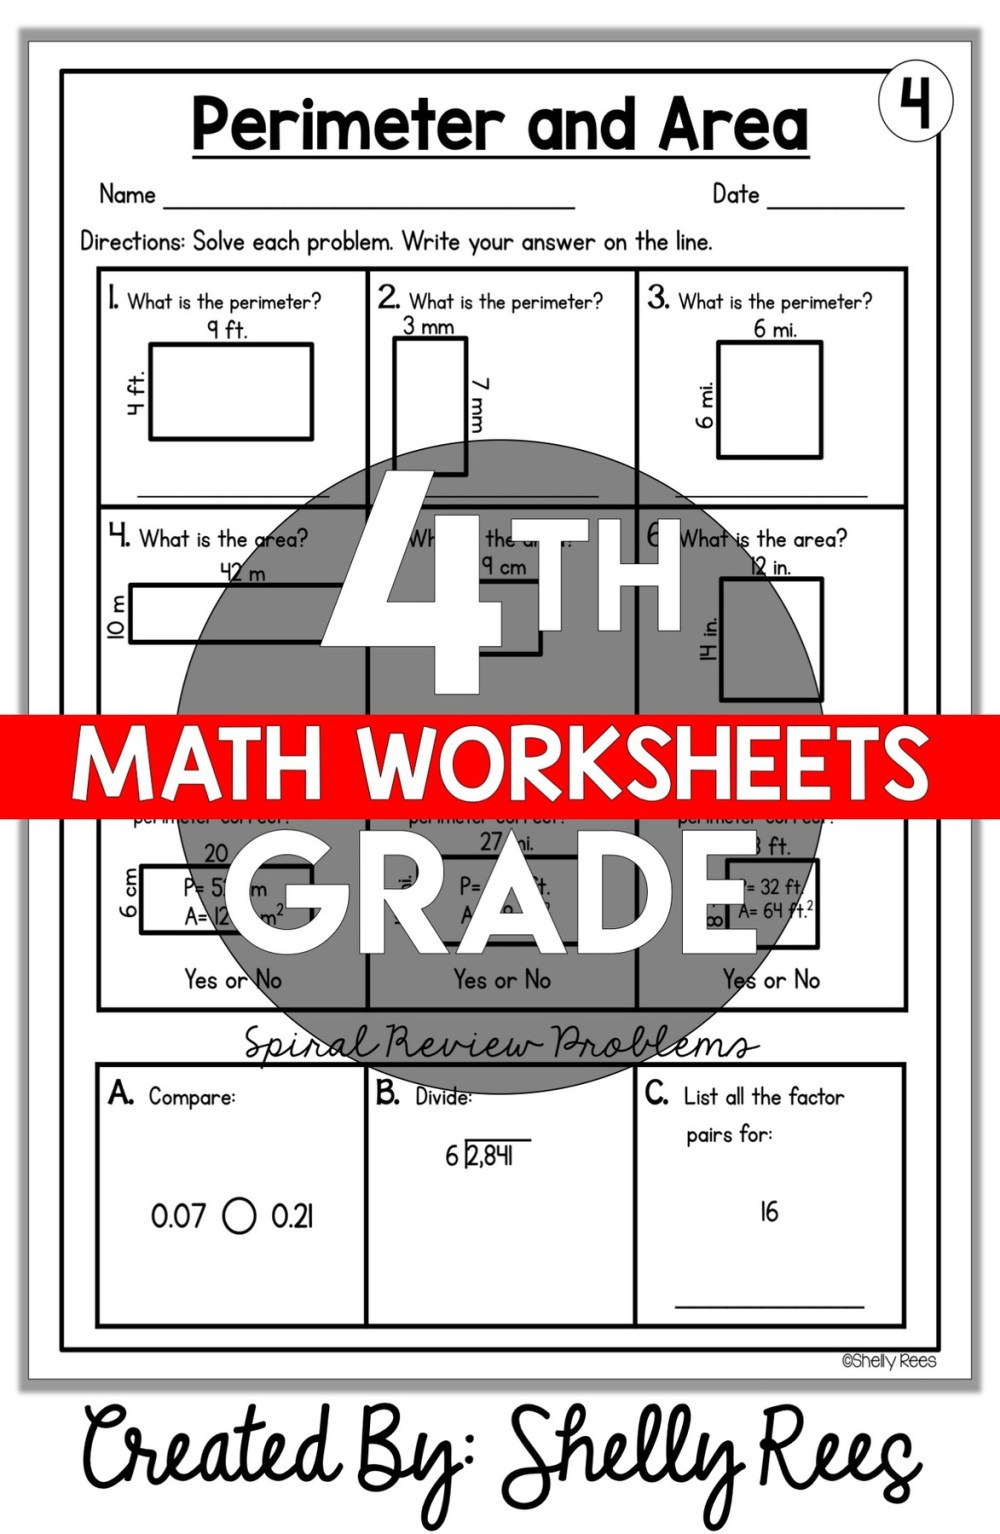 medium resolution of 4th Grade Math Worksheets Free and Printable - Appletastic Learning